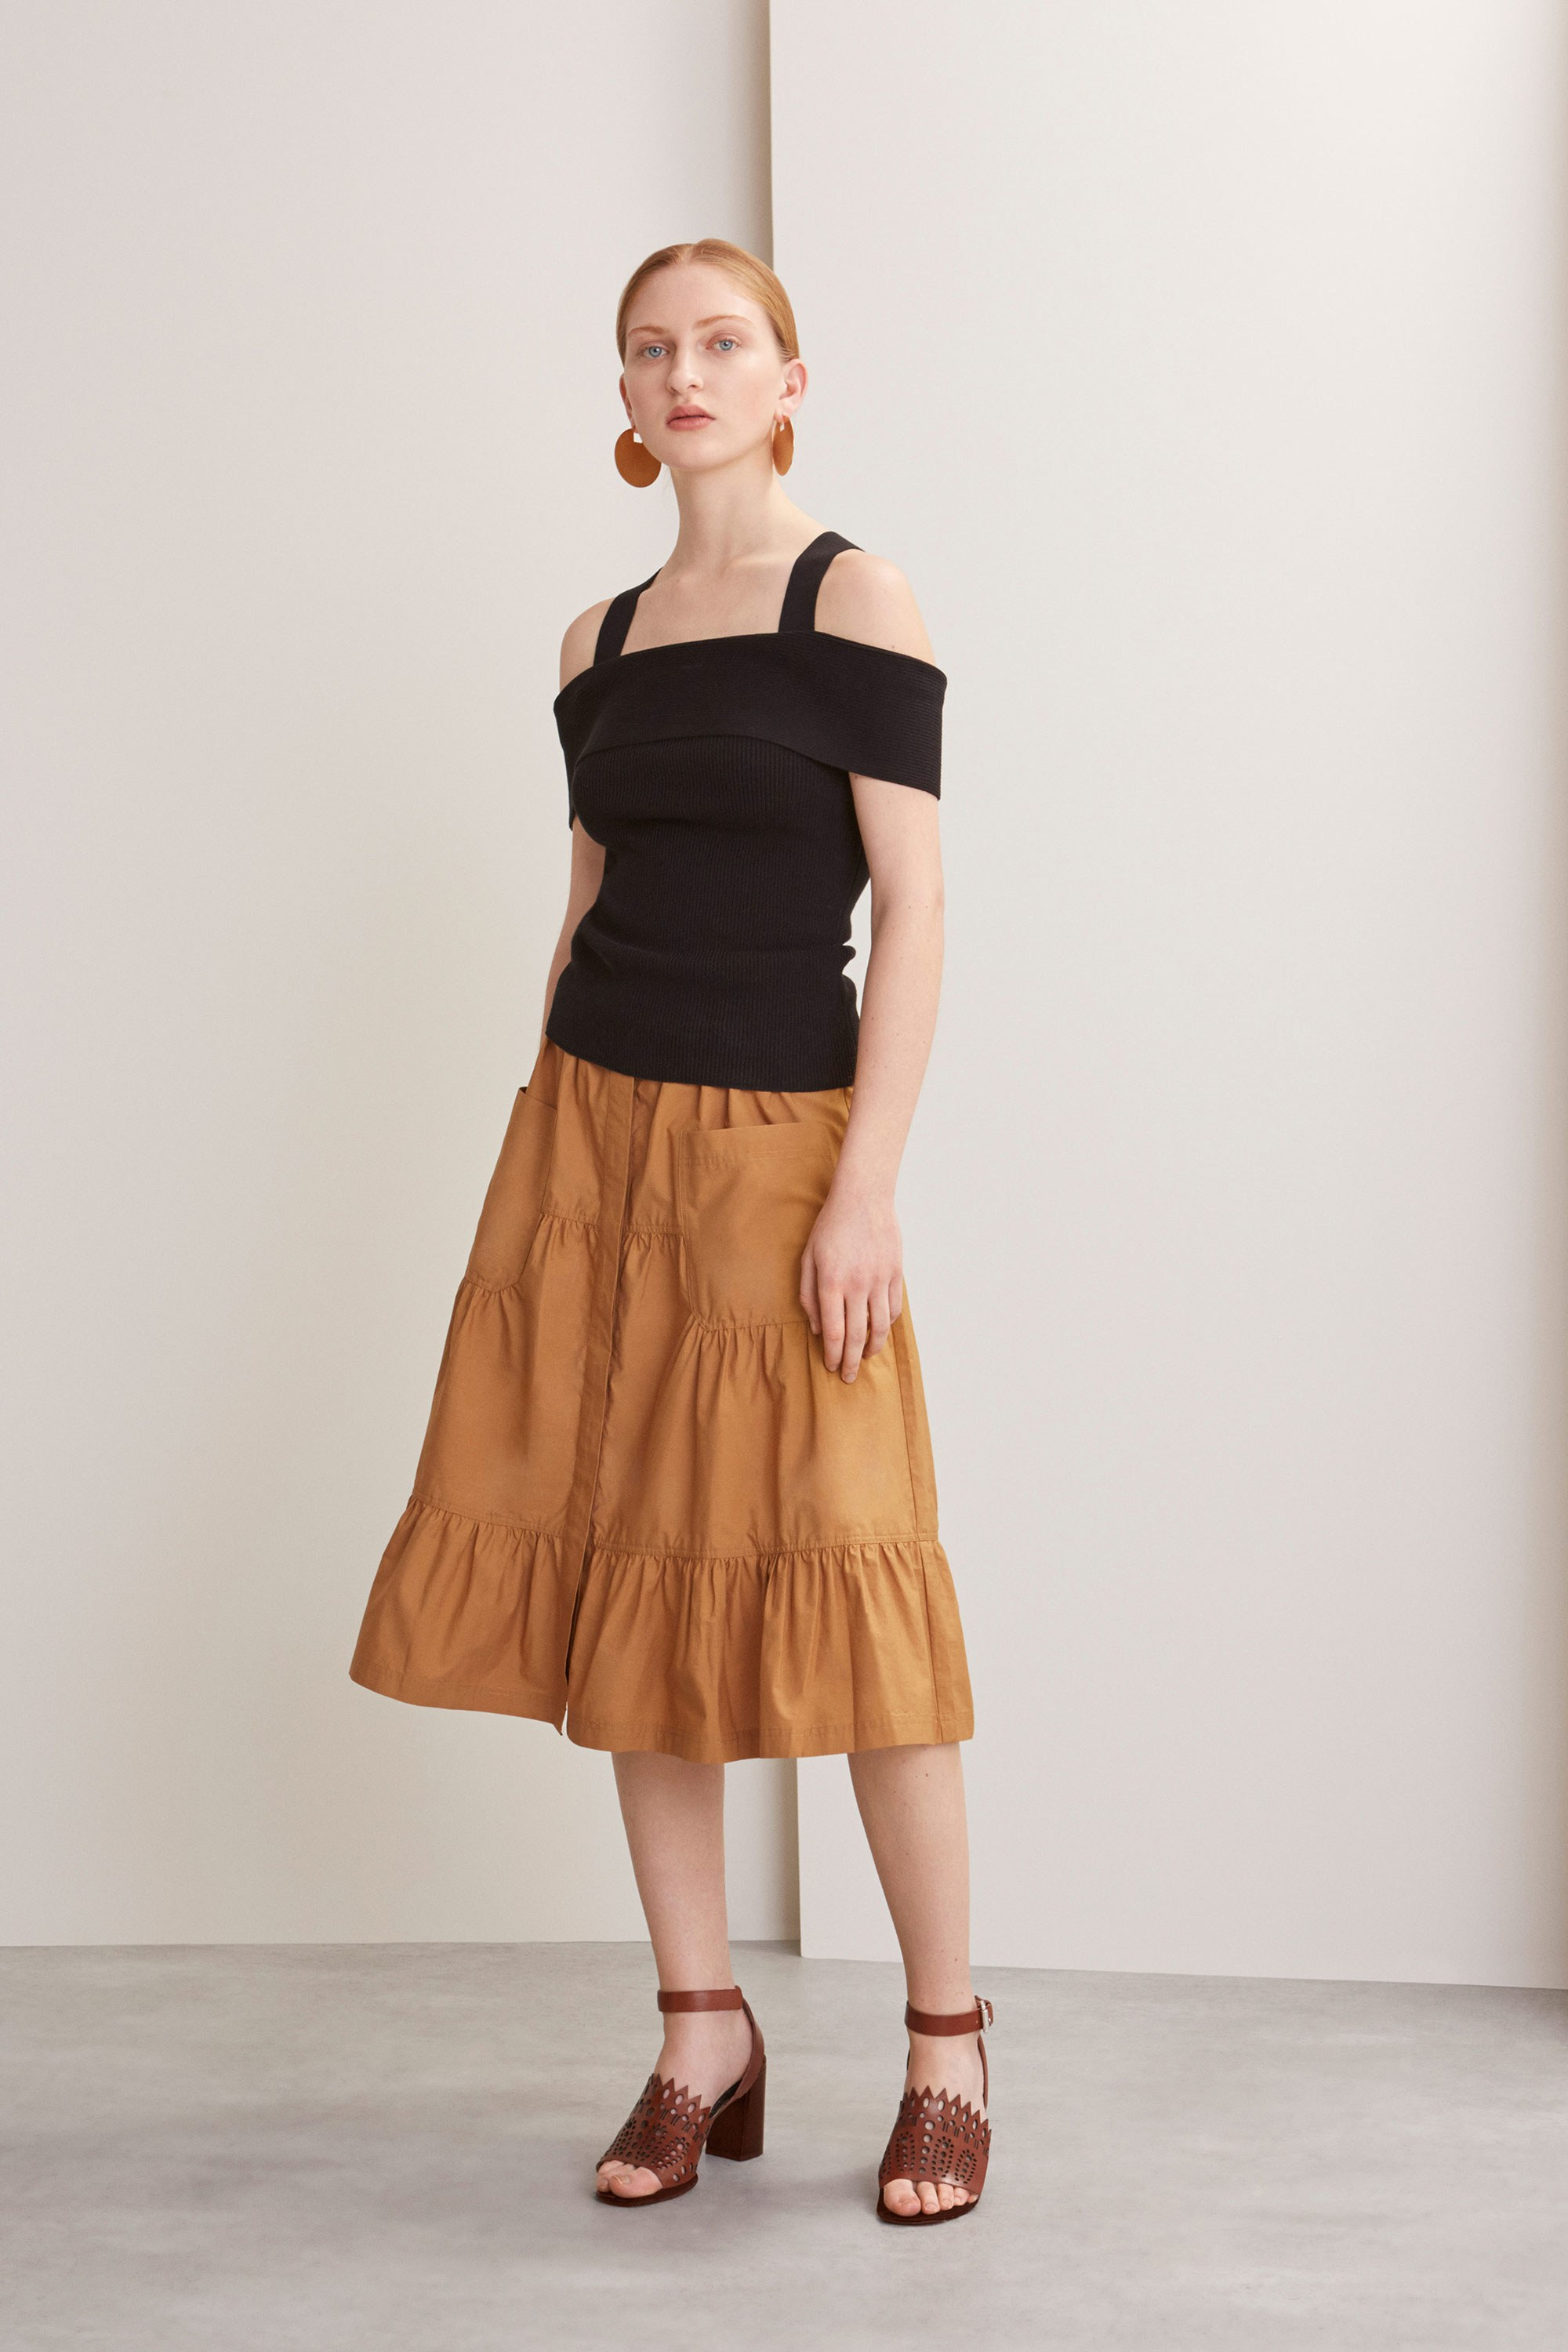 09-whistles-pre-fall-17